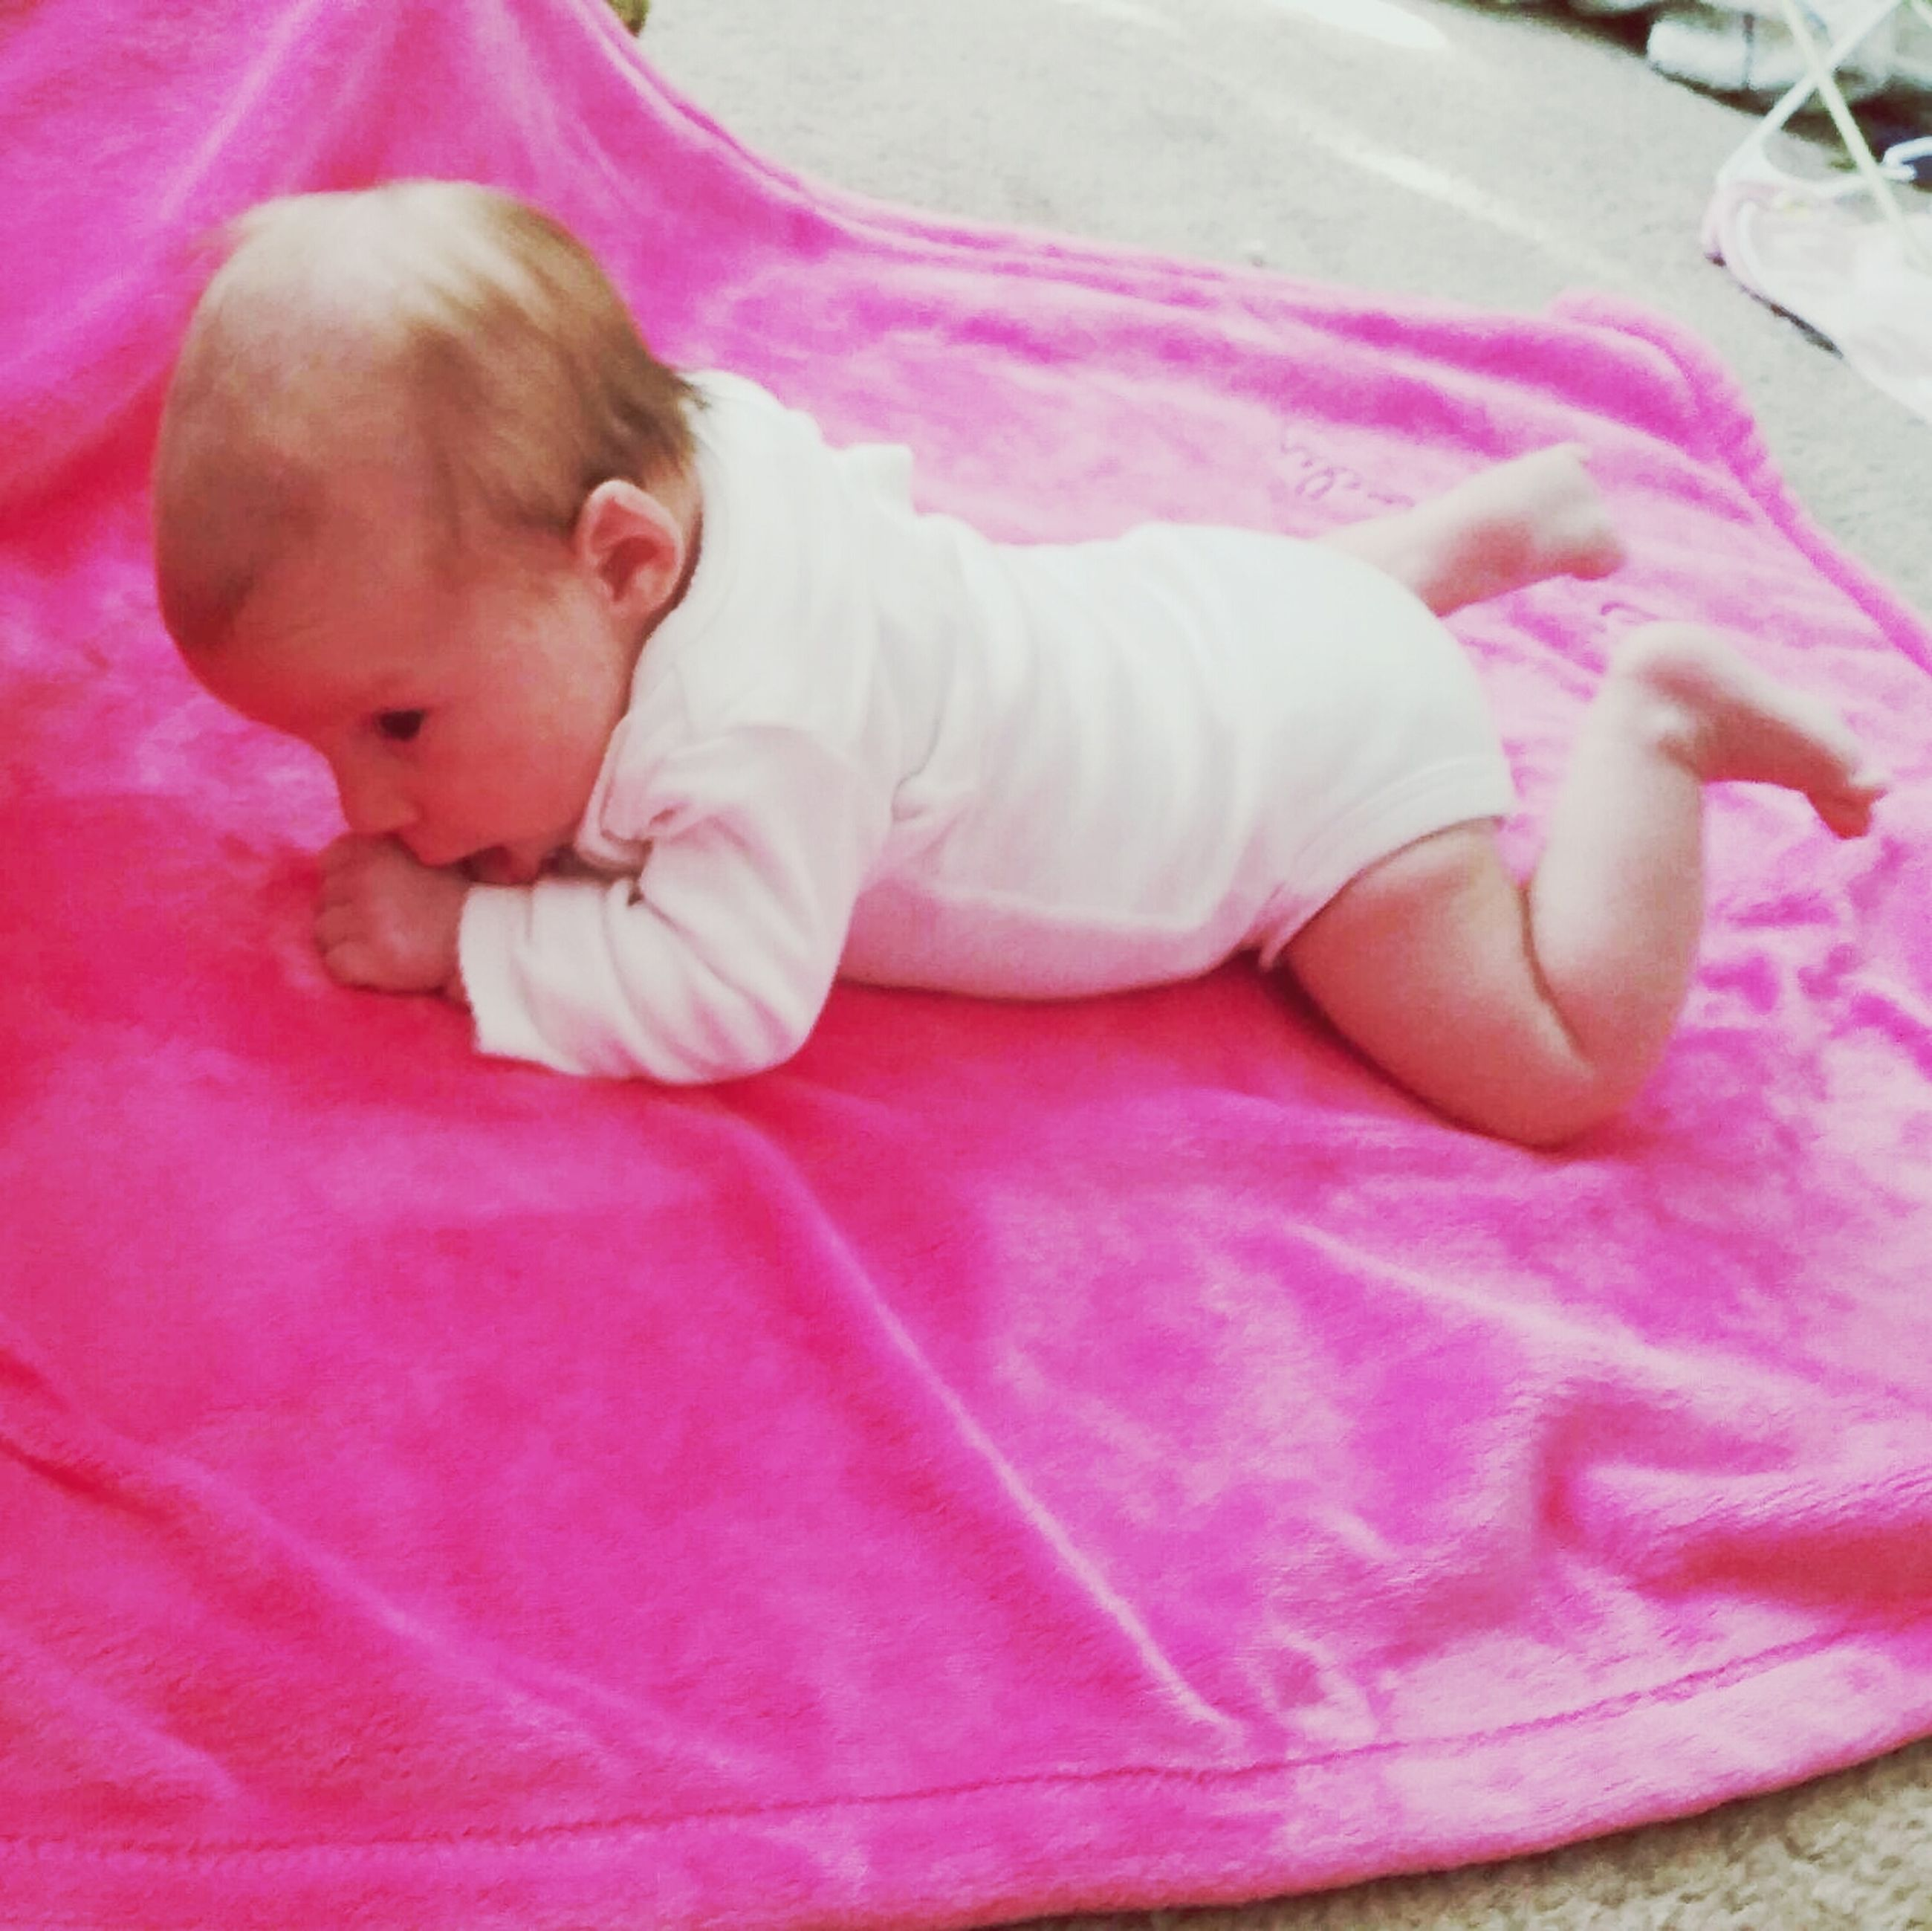 childhood, innocence, cute, baby, elementary age, toddler, babyhood, girls, person, high angle view, indoors, relaxation, pink color, lying down, bed, sleeping, boys, unknown gender